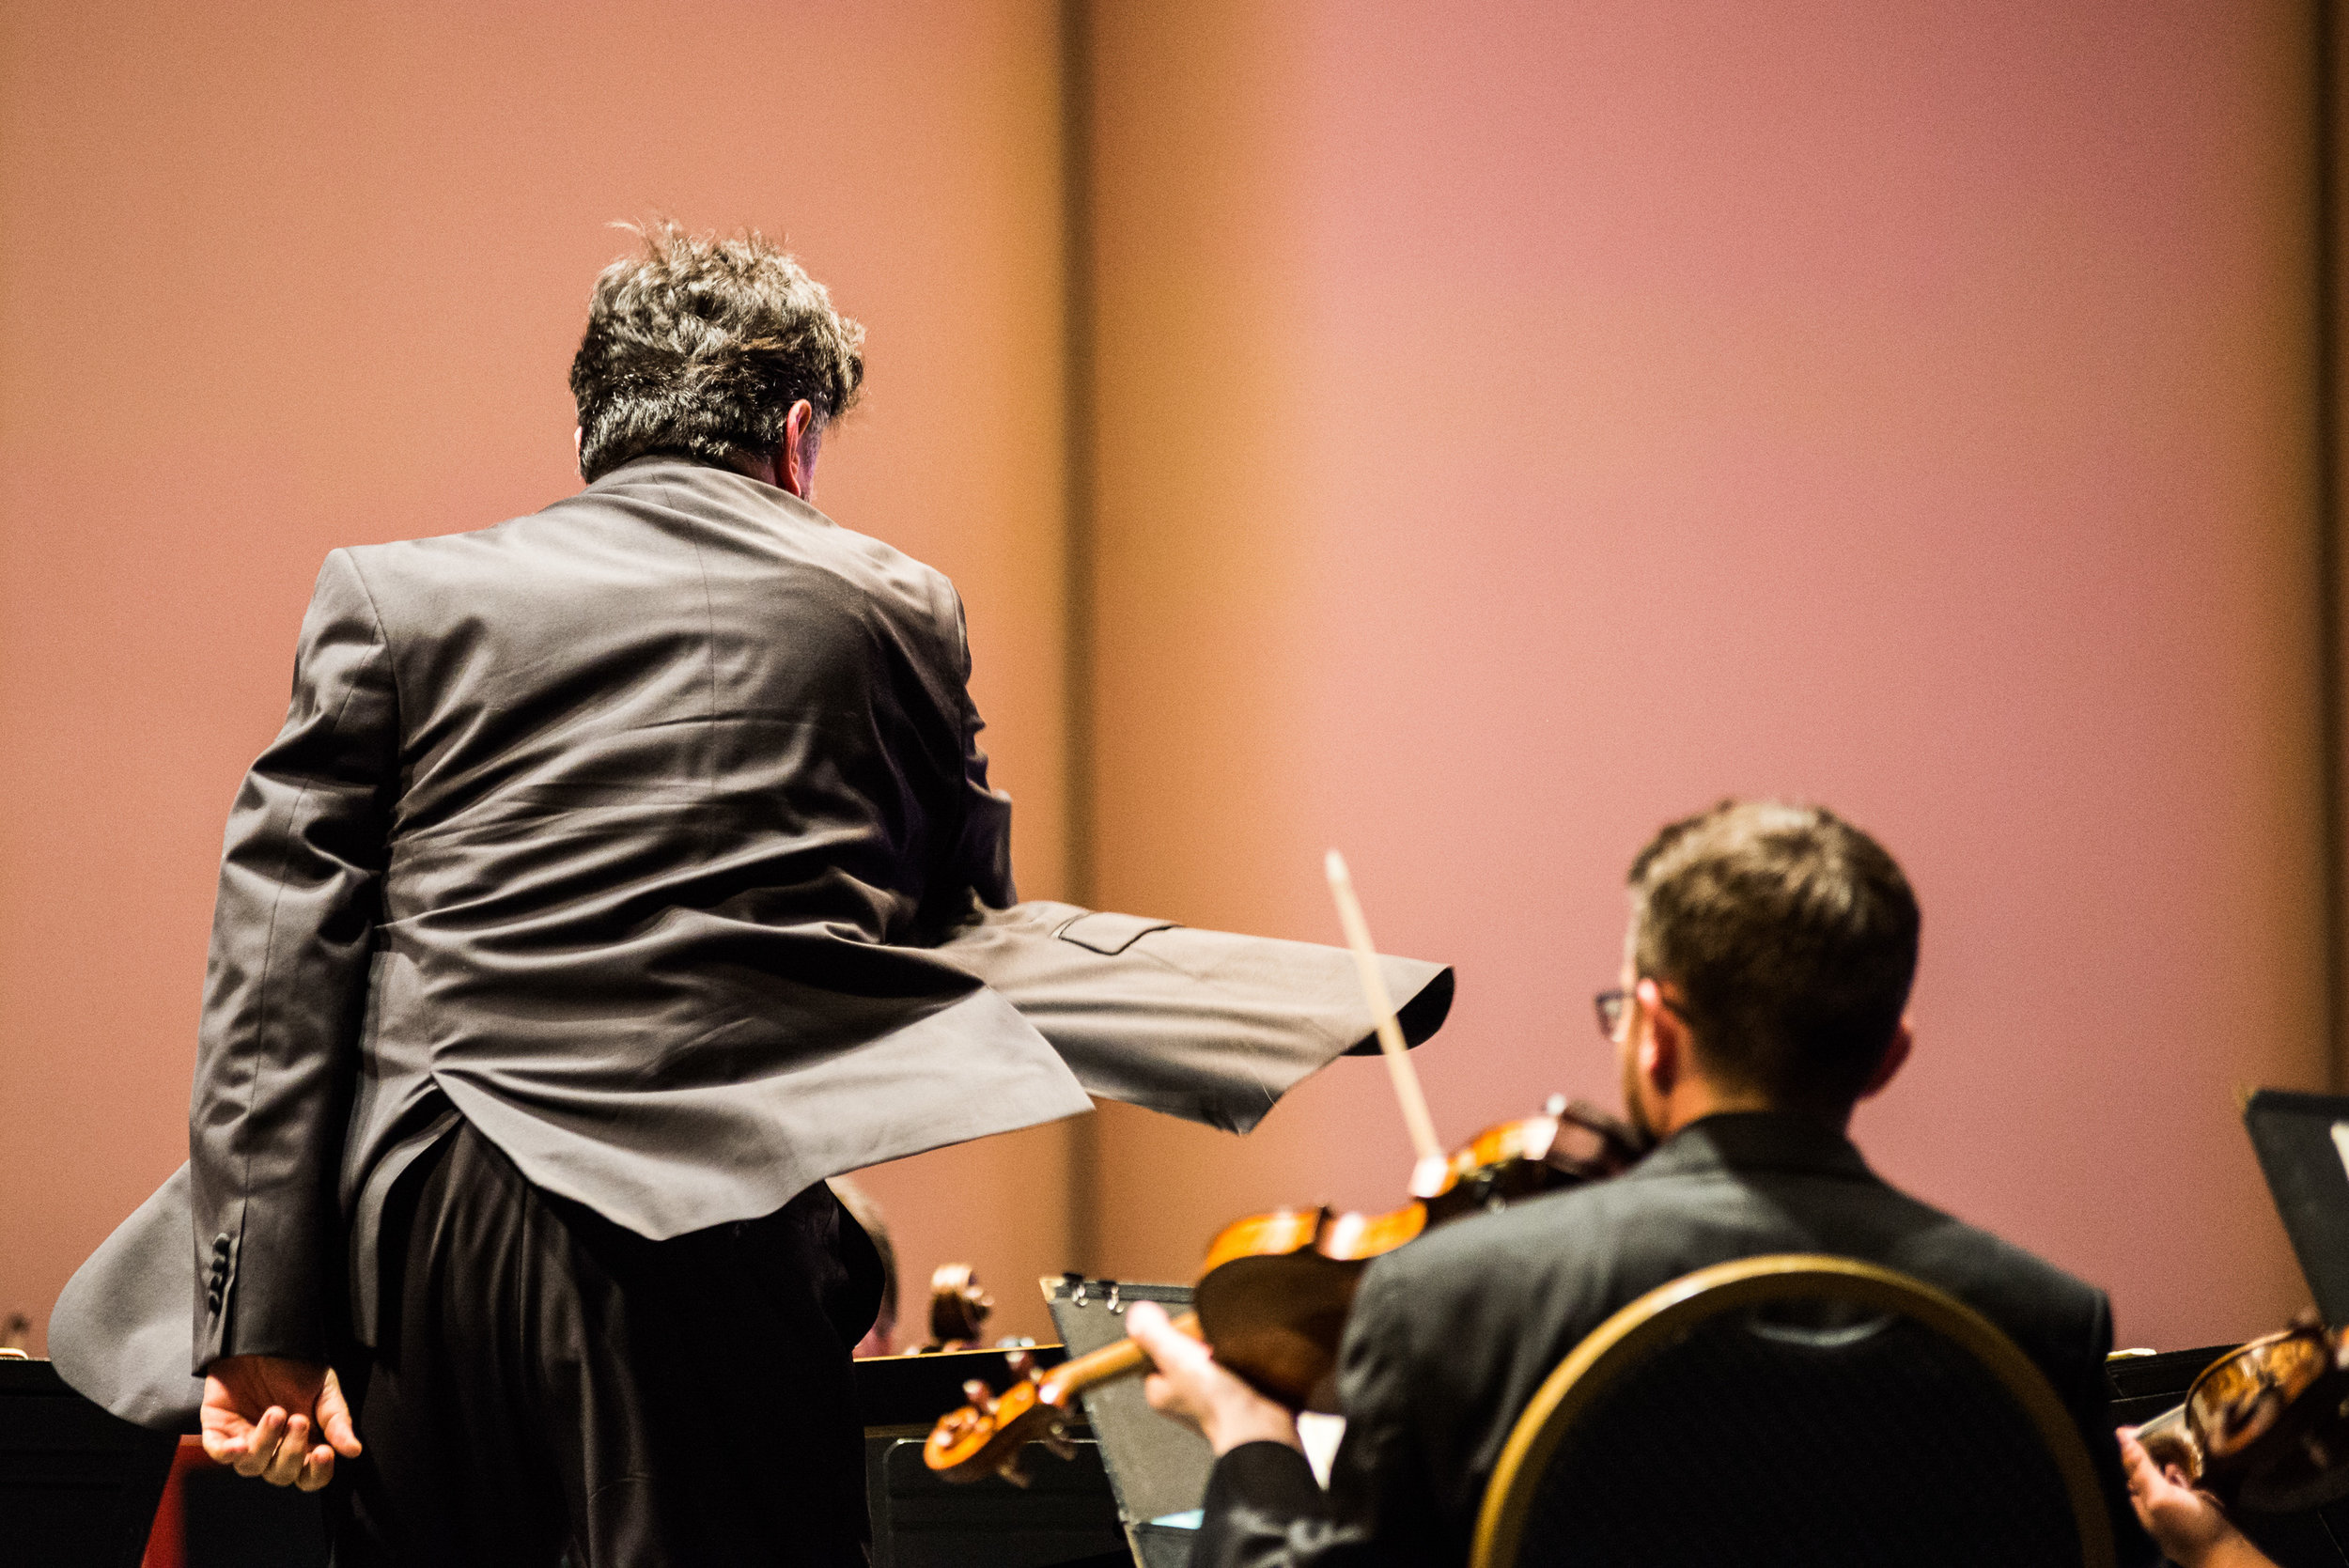 Constantine Kitsopoulous conducting at his last OKM concert in 2015